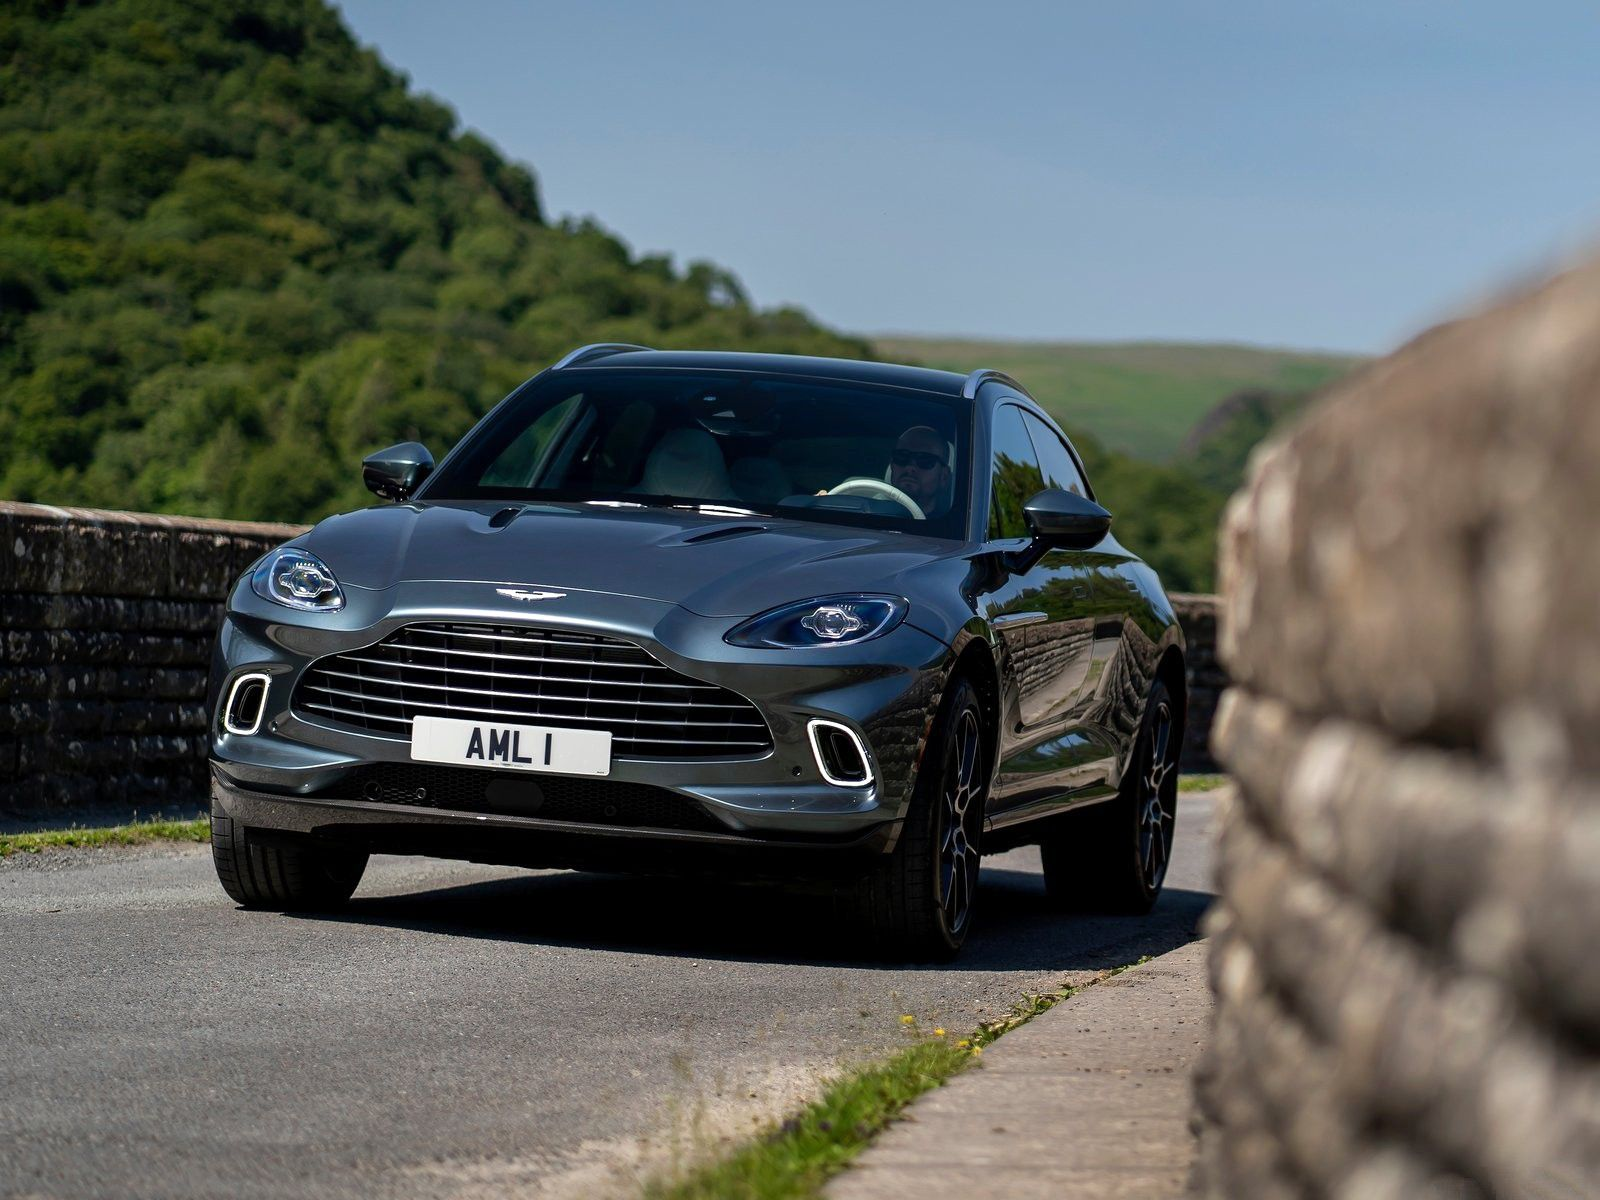 VOITURES DE LEGENDE (1210) : ASTON MARTIN  DBX - 2021